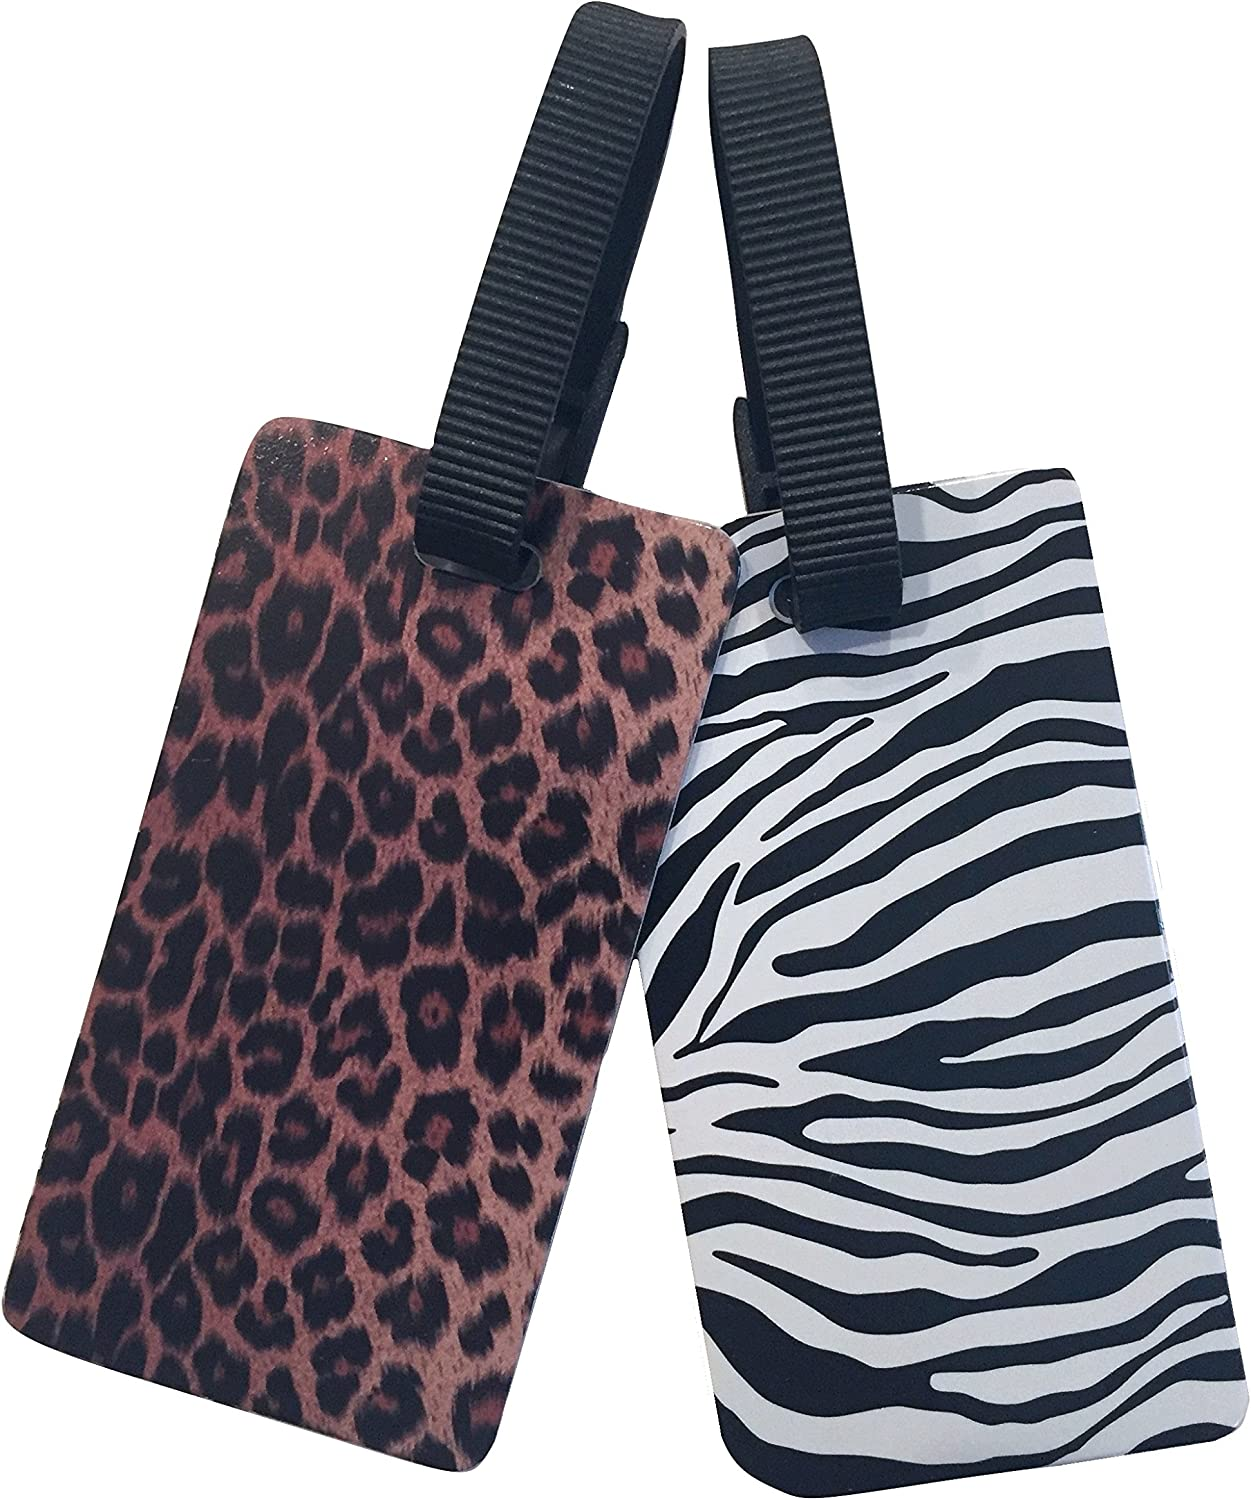 Nicole Miller 2-Pack Luggage Tags for Suitcases - Travel ID Identification Labels Set for Bags & Baggage (Zebra & Leopard Print)